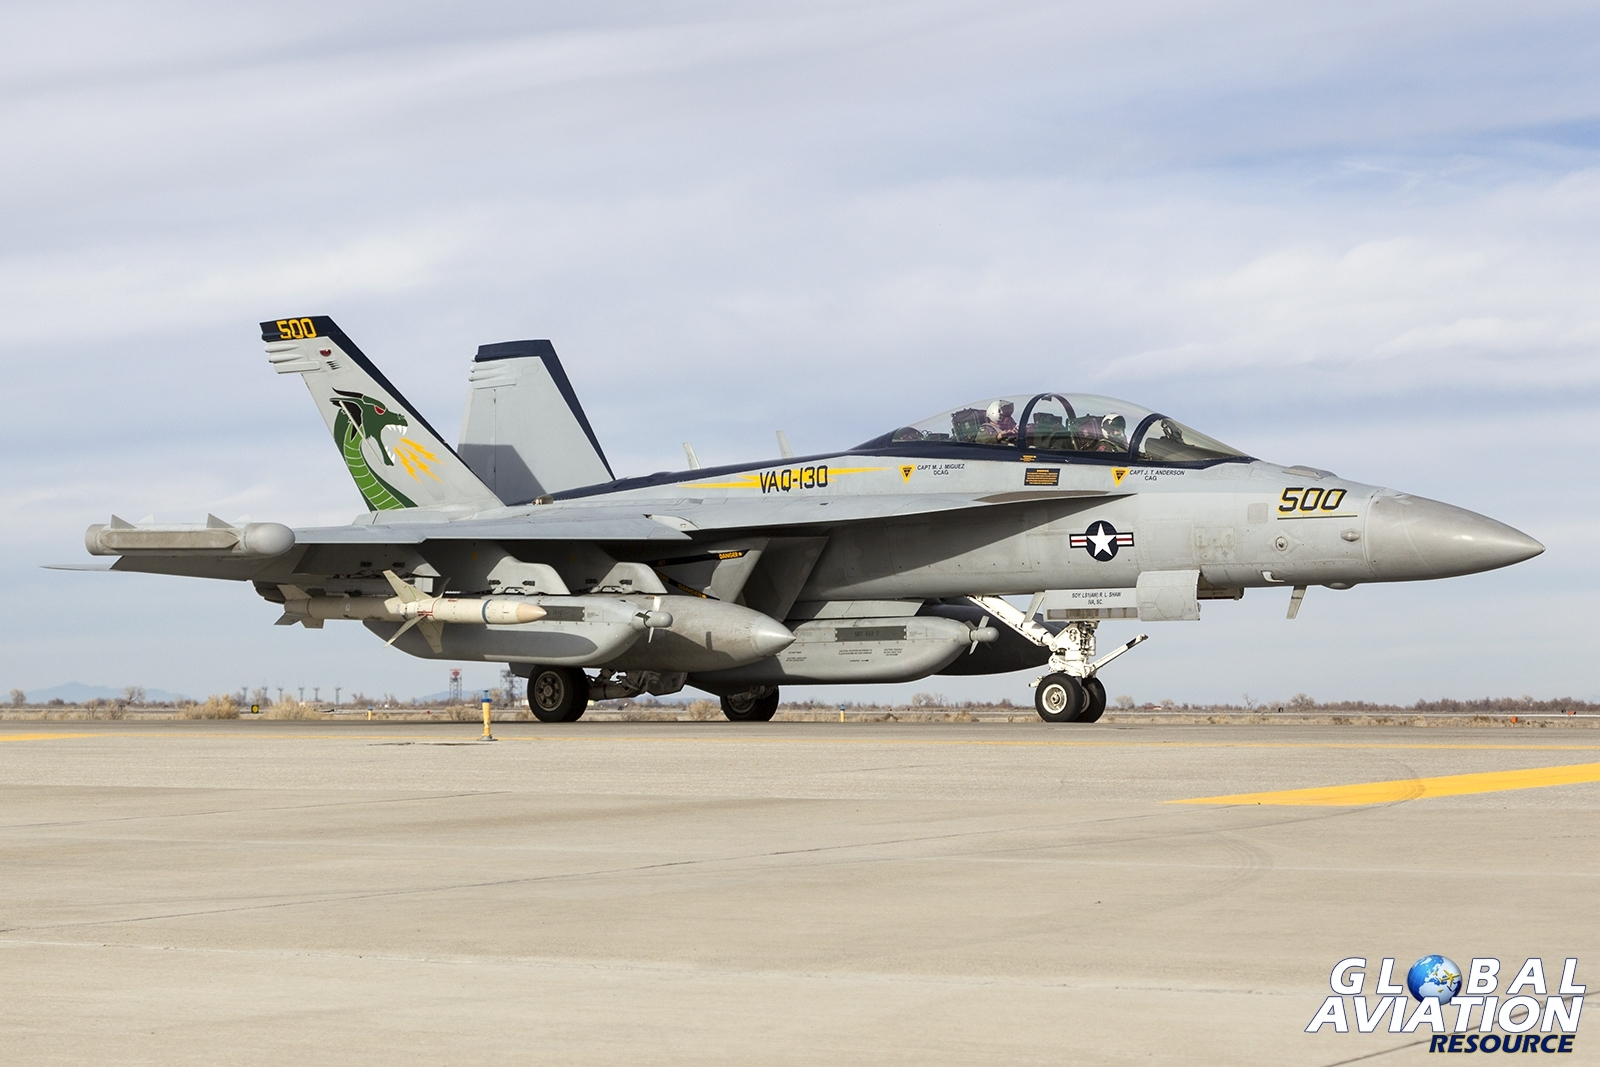 VAQ-130 Zappers EA-18G Growler © Tom Gibbons - Global Aviation Resource